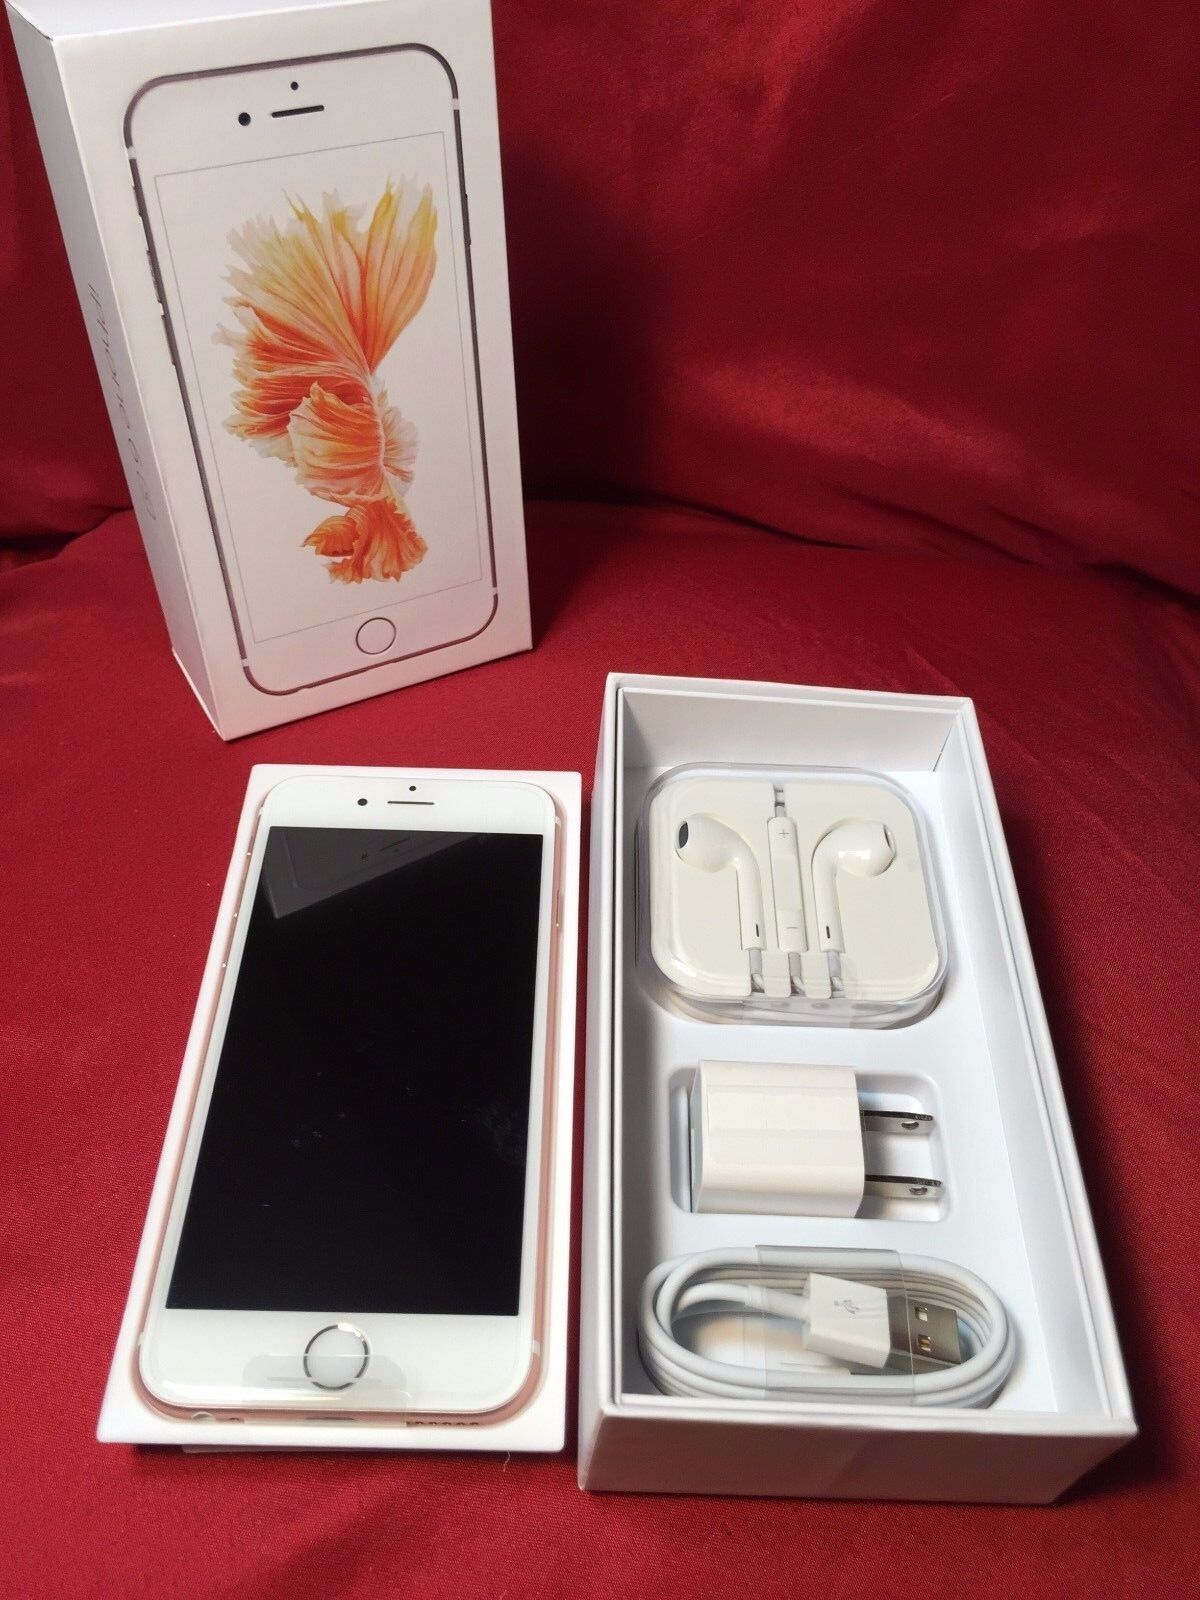 Iphone - NEW OTHER Apple iPhone 6S Plus - (Factory Unlocked) or (AT&T) or (T-Mobile)